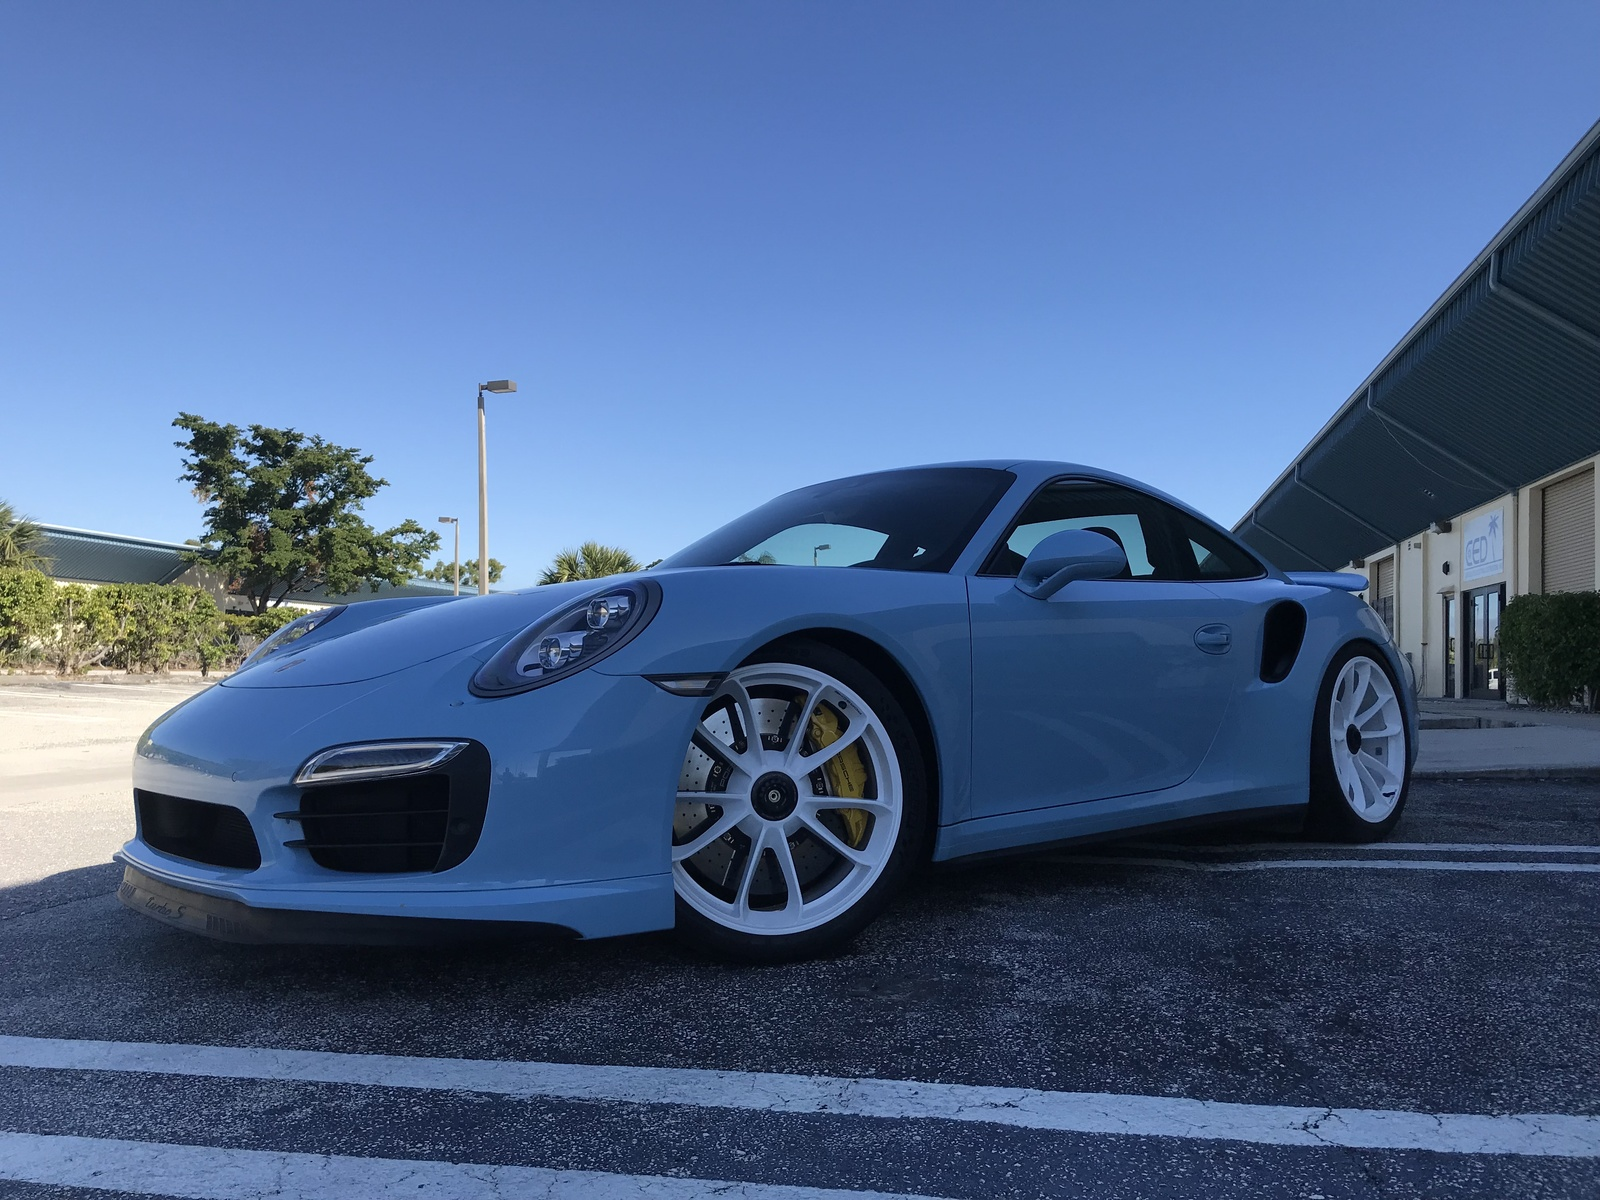 2015 Gulf Blue Porsche 911 Turbo 991.1 Turbo S picture, mods, upgrades